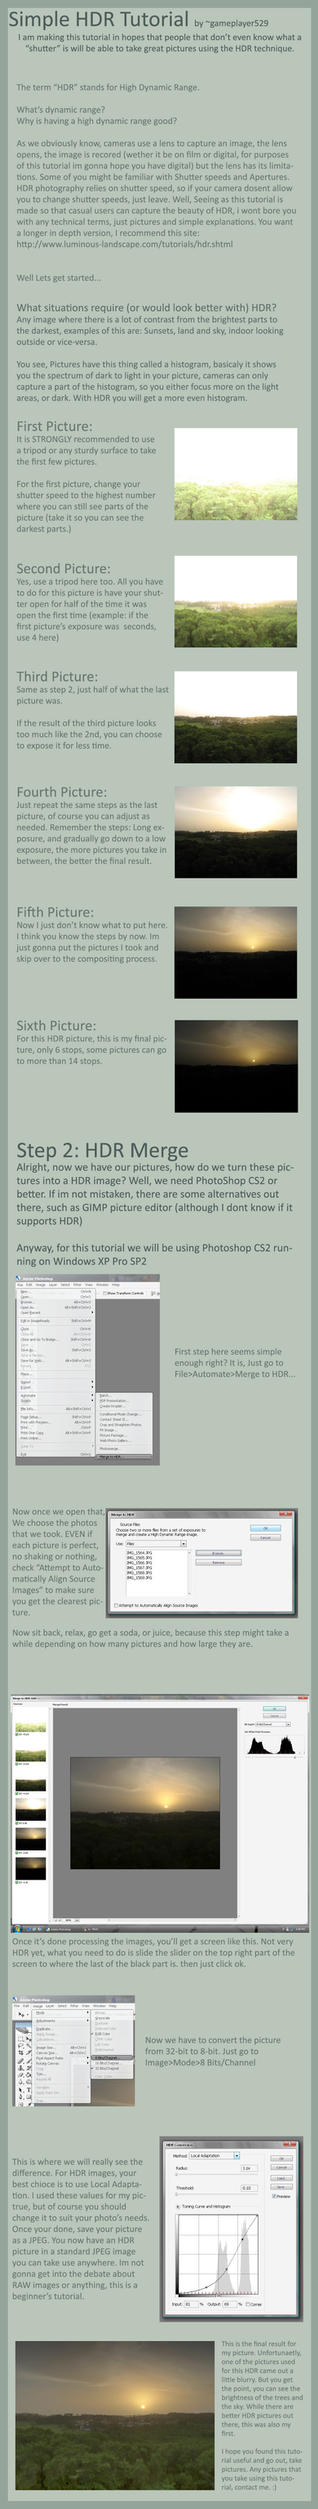 Simple HDR Tutorial by gameplayer529